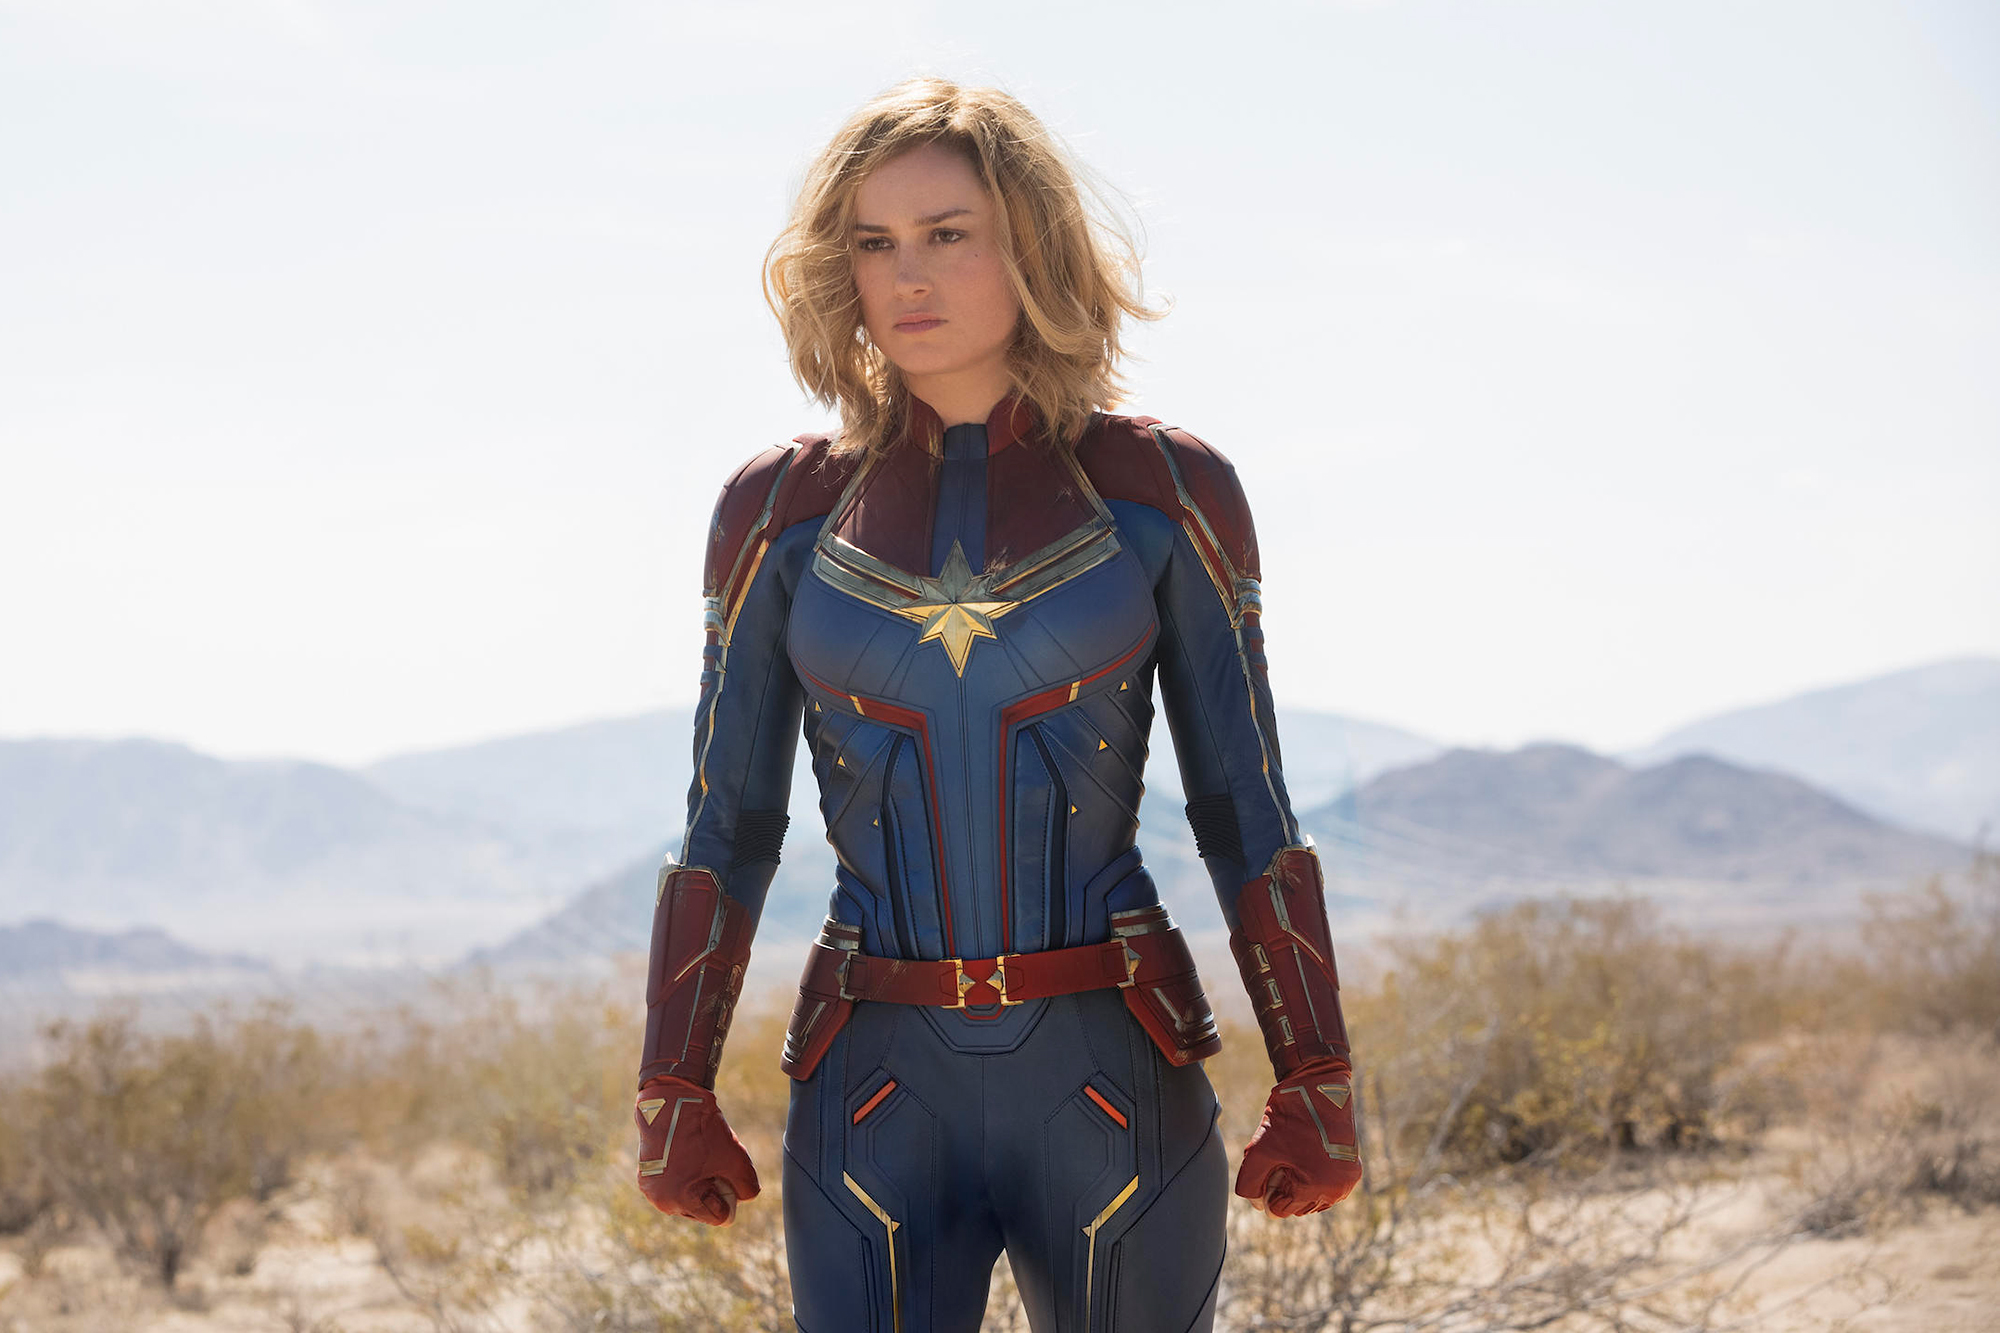 stars as superheroes Brie Larson - Brie Larson in Captain Marvel.